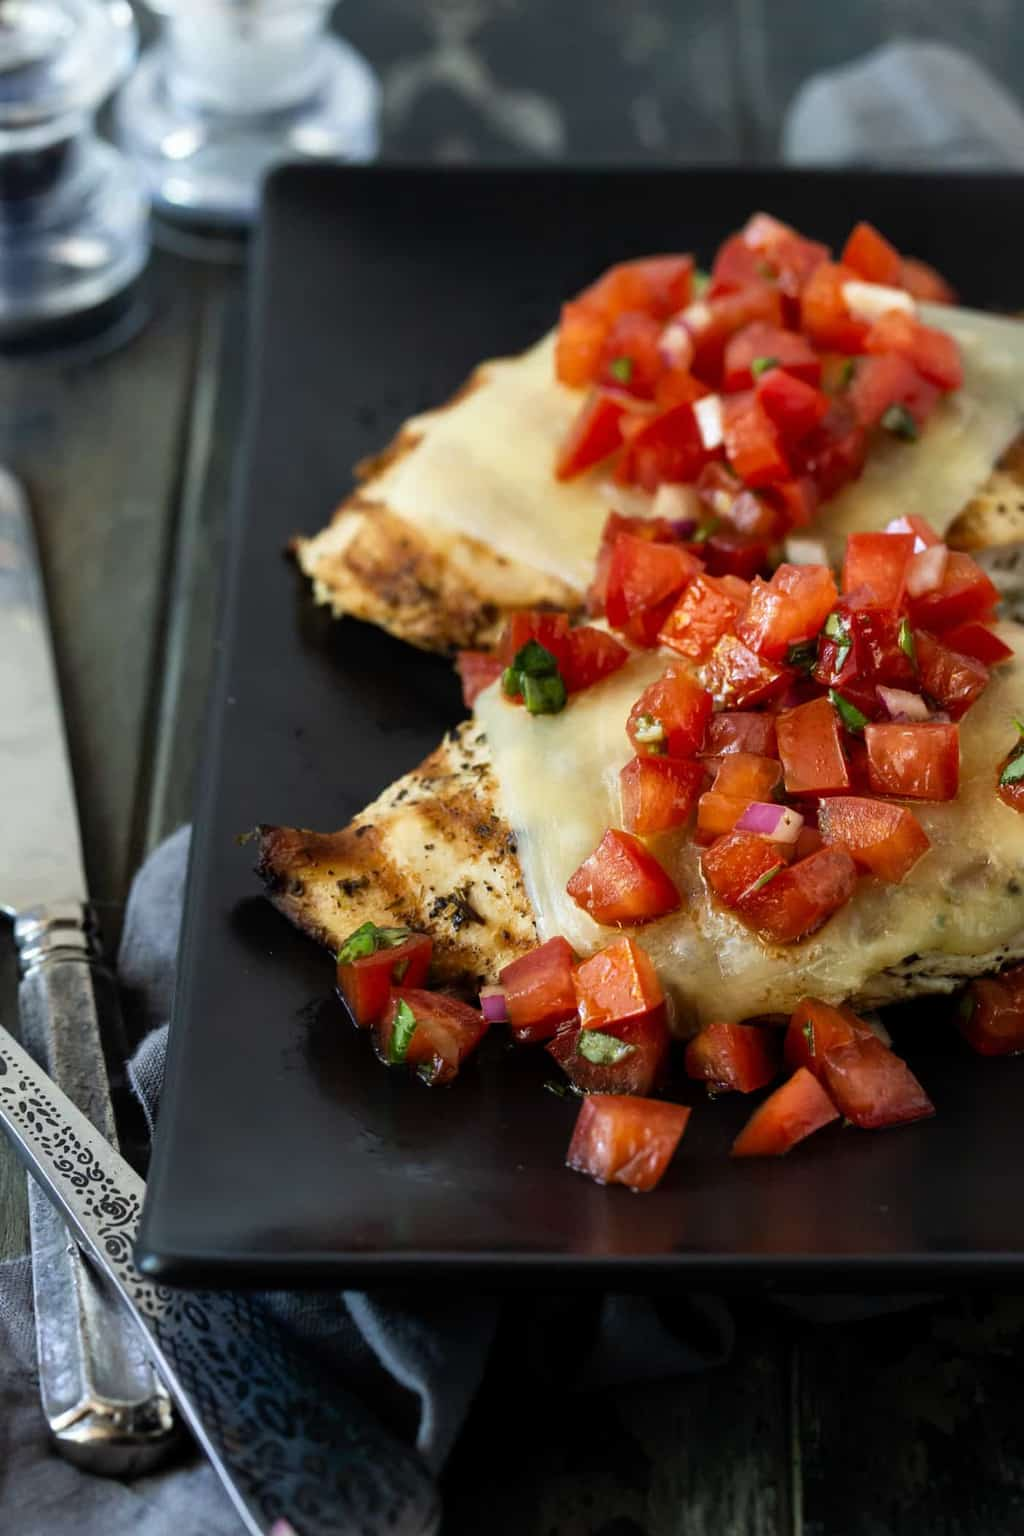 Two pieces of easy Cheesy Grilled Chicken Bruschetta on a black plate. Topped with melted mozzarella cheese and fresh tomato bruschetta topping.